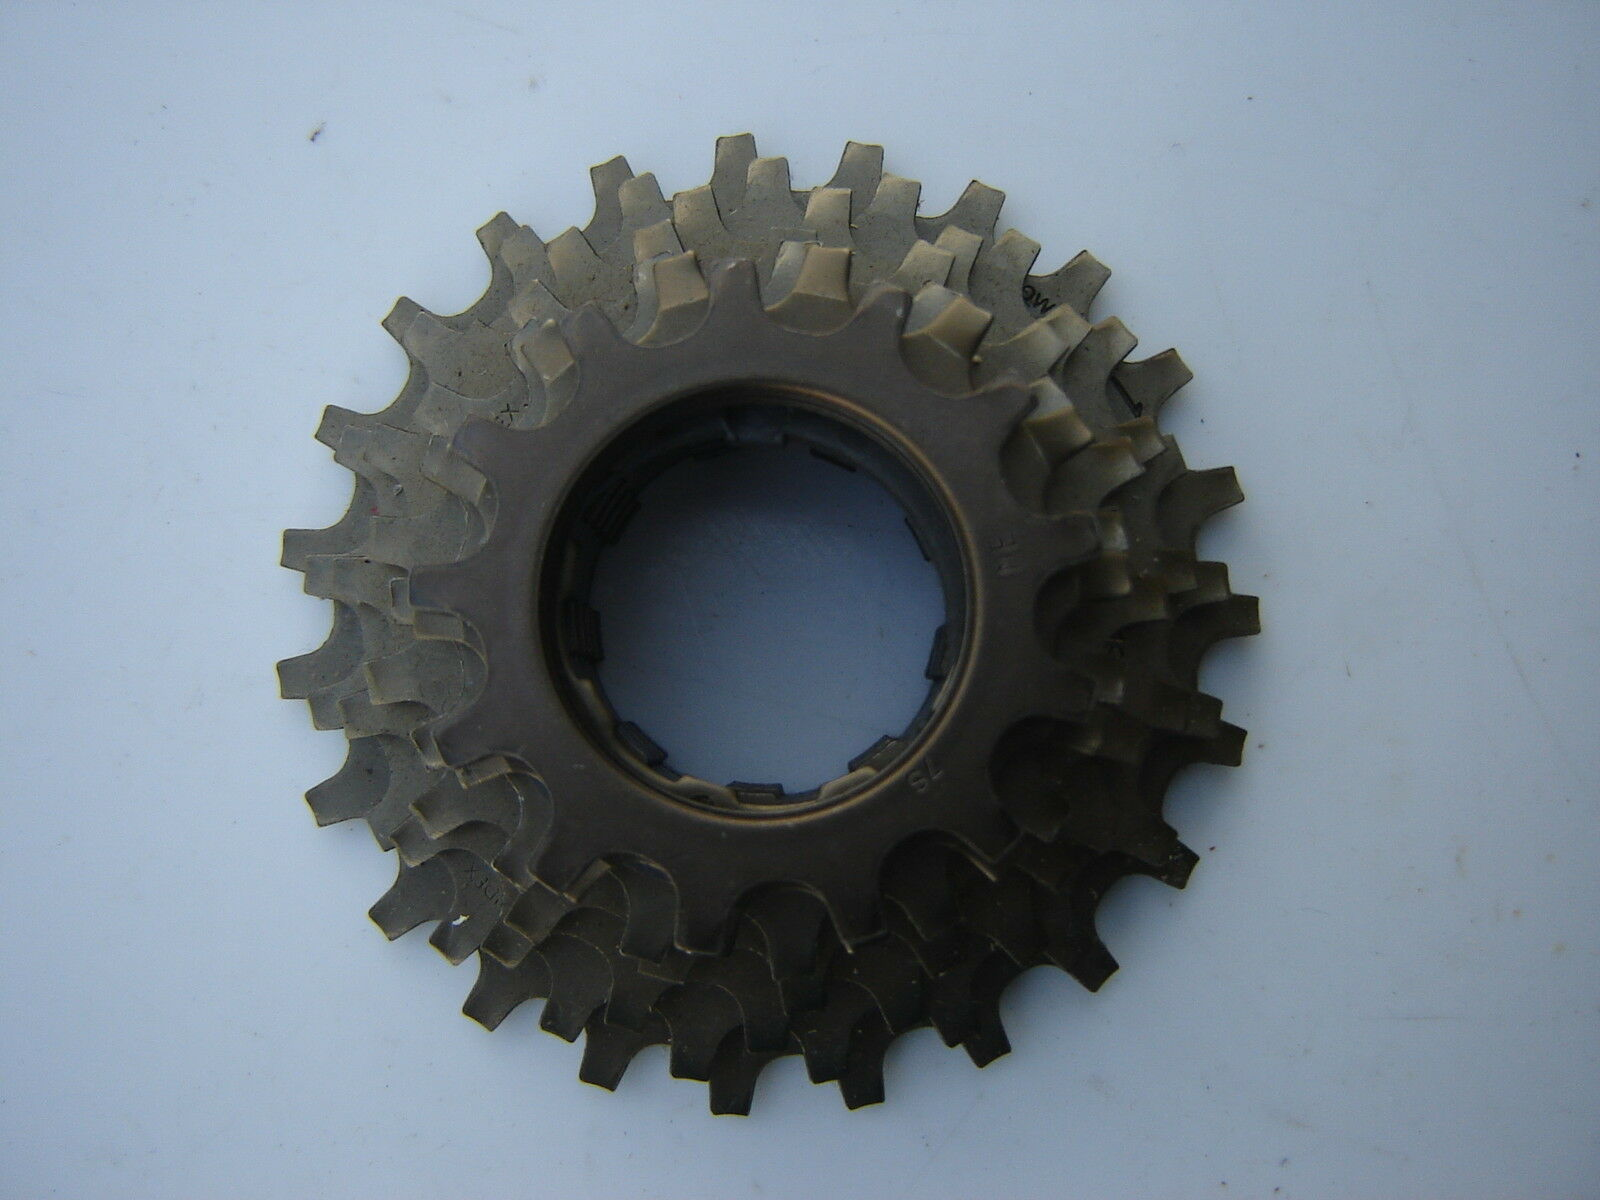 SHIMANO 600 EX  AX ULTEGRA 7-SPEED UNIGLIDE CASSETTE 13-14-15-17-19-21-23 - NOS  save 60% discount and fast shipping worldwide